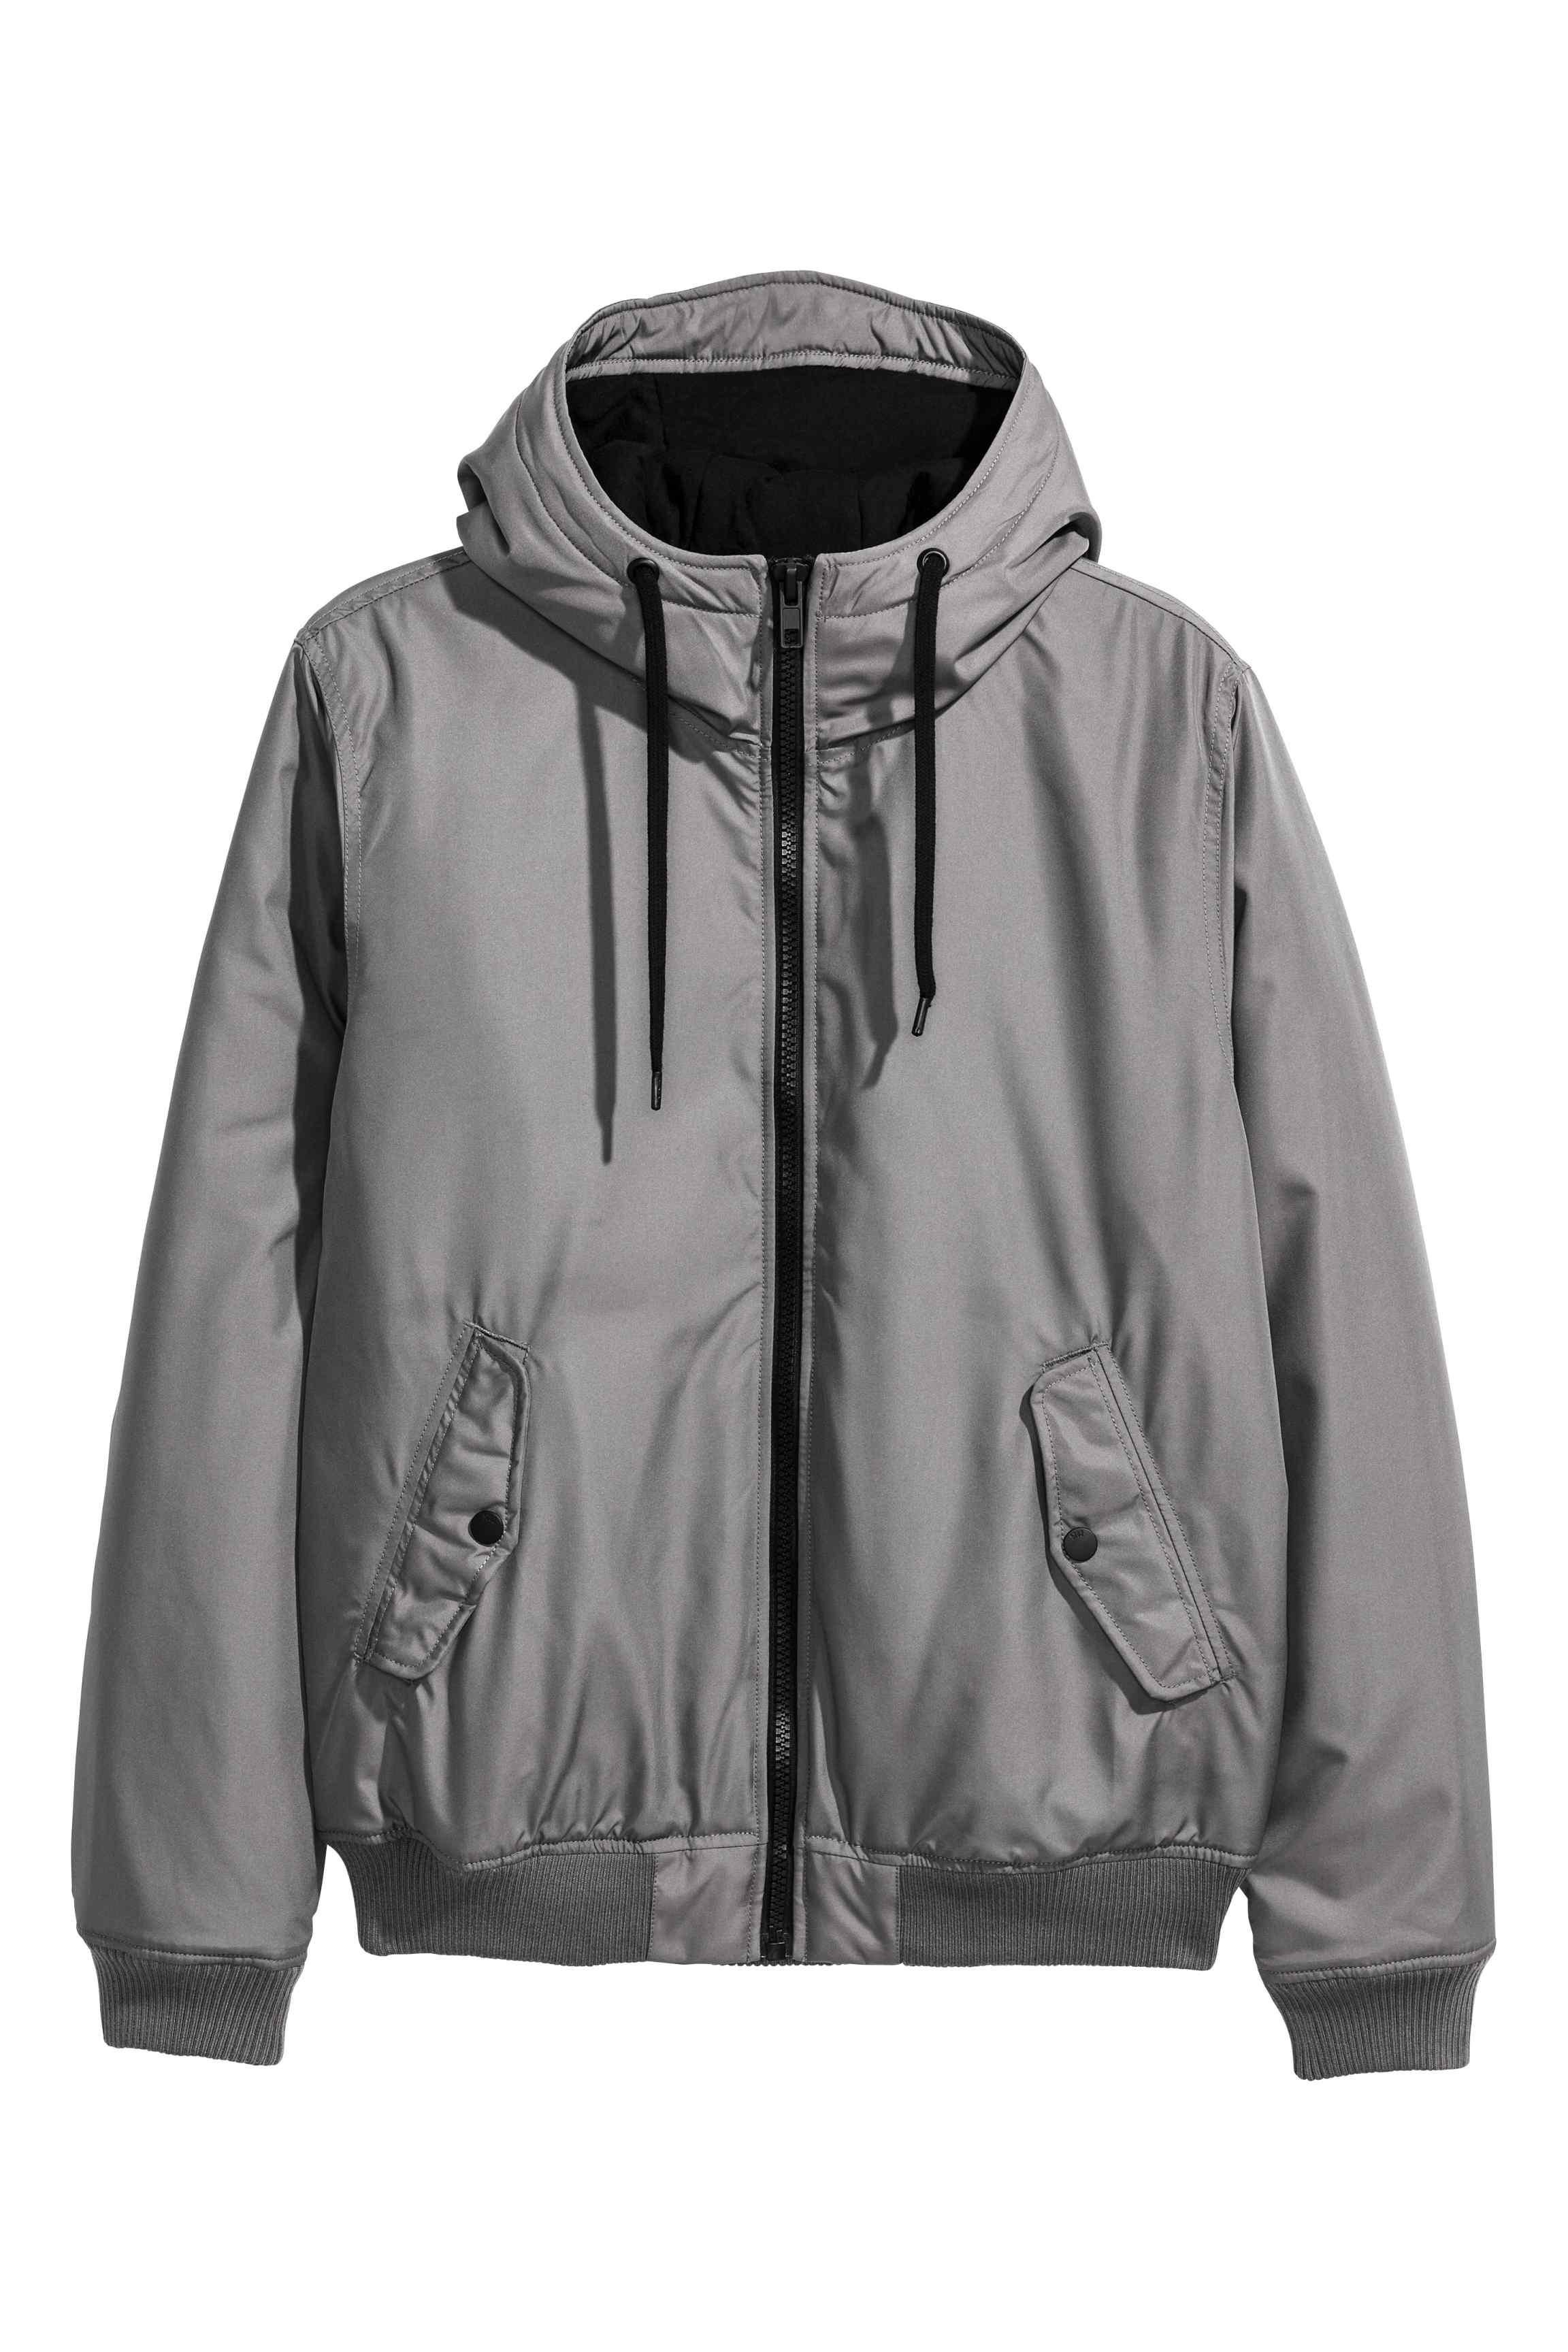 H&M Synthetic Padded Jacket in Grey (Grey) for Men